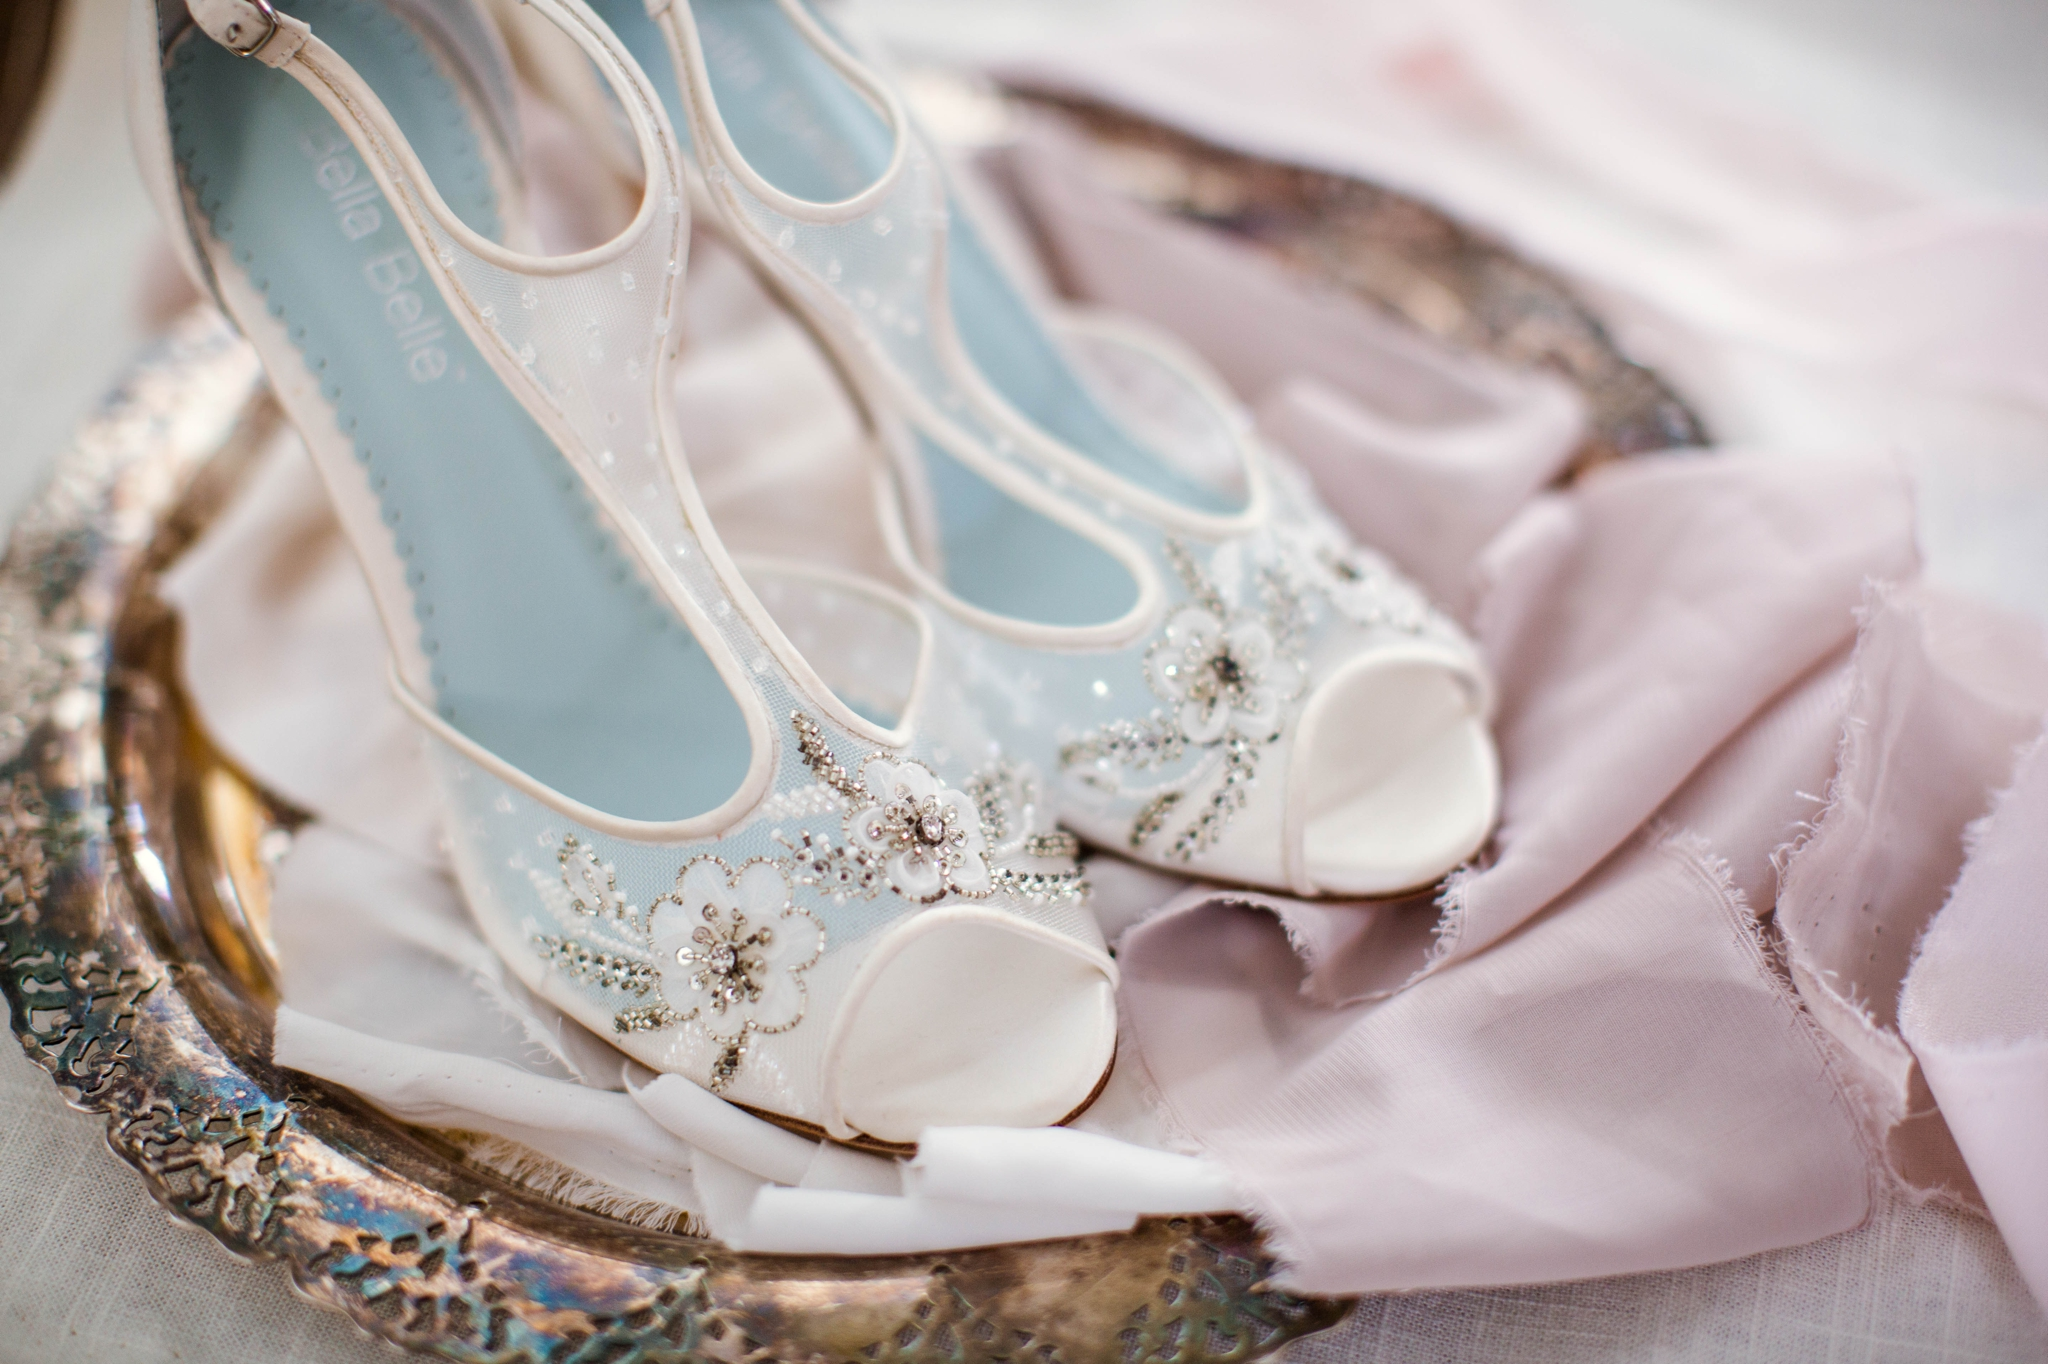 detail shot of all white bridal shoes with light blue details on an antique tray - Fine Art Wedding Photographer in Honolulu, Oahu, Hawaii - edited with the for the love of film presets by jose villa